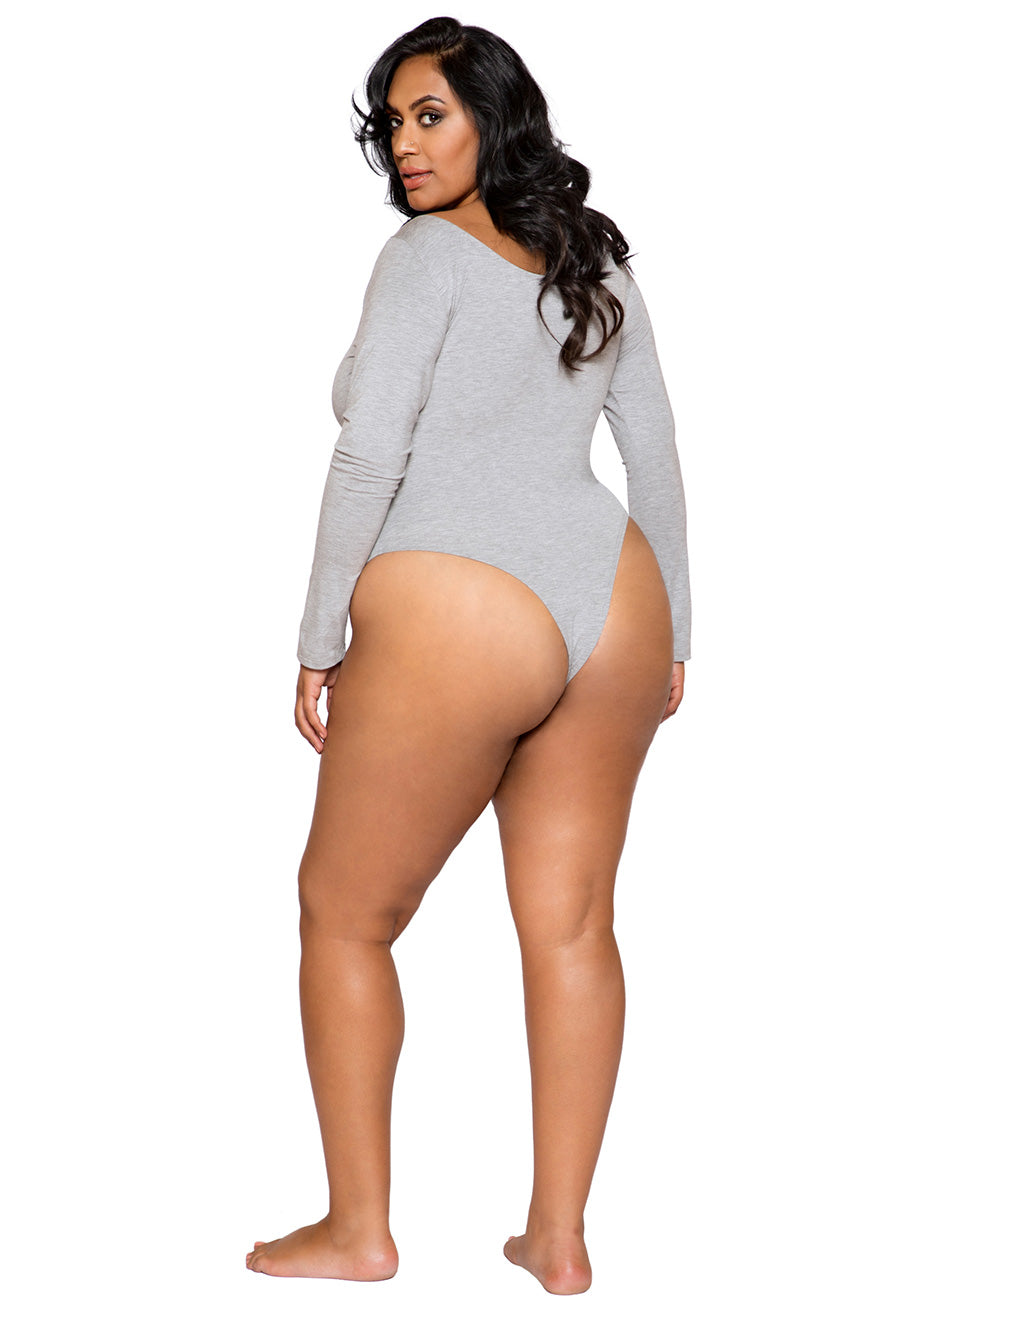 Cozy Long Sleeved Bodysuit By Roma Costume Plus Size Gray Back